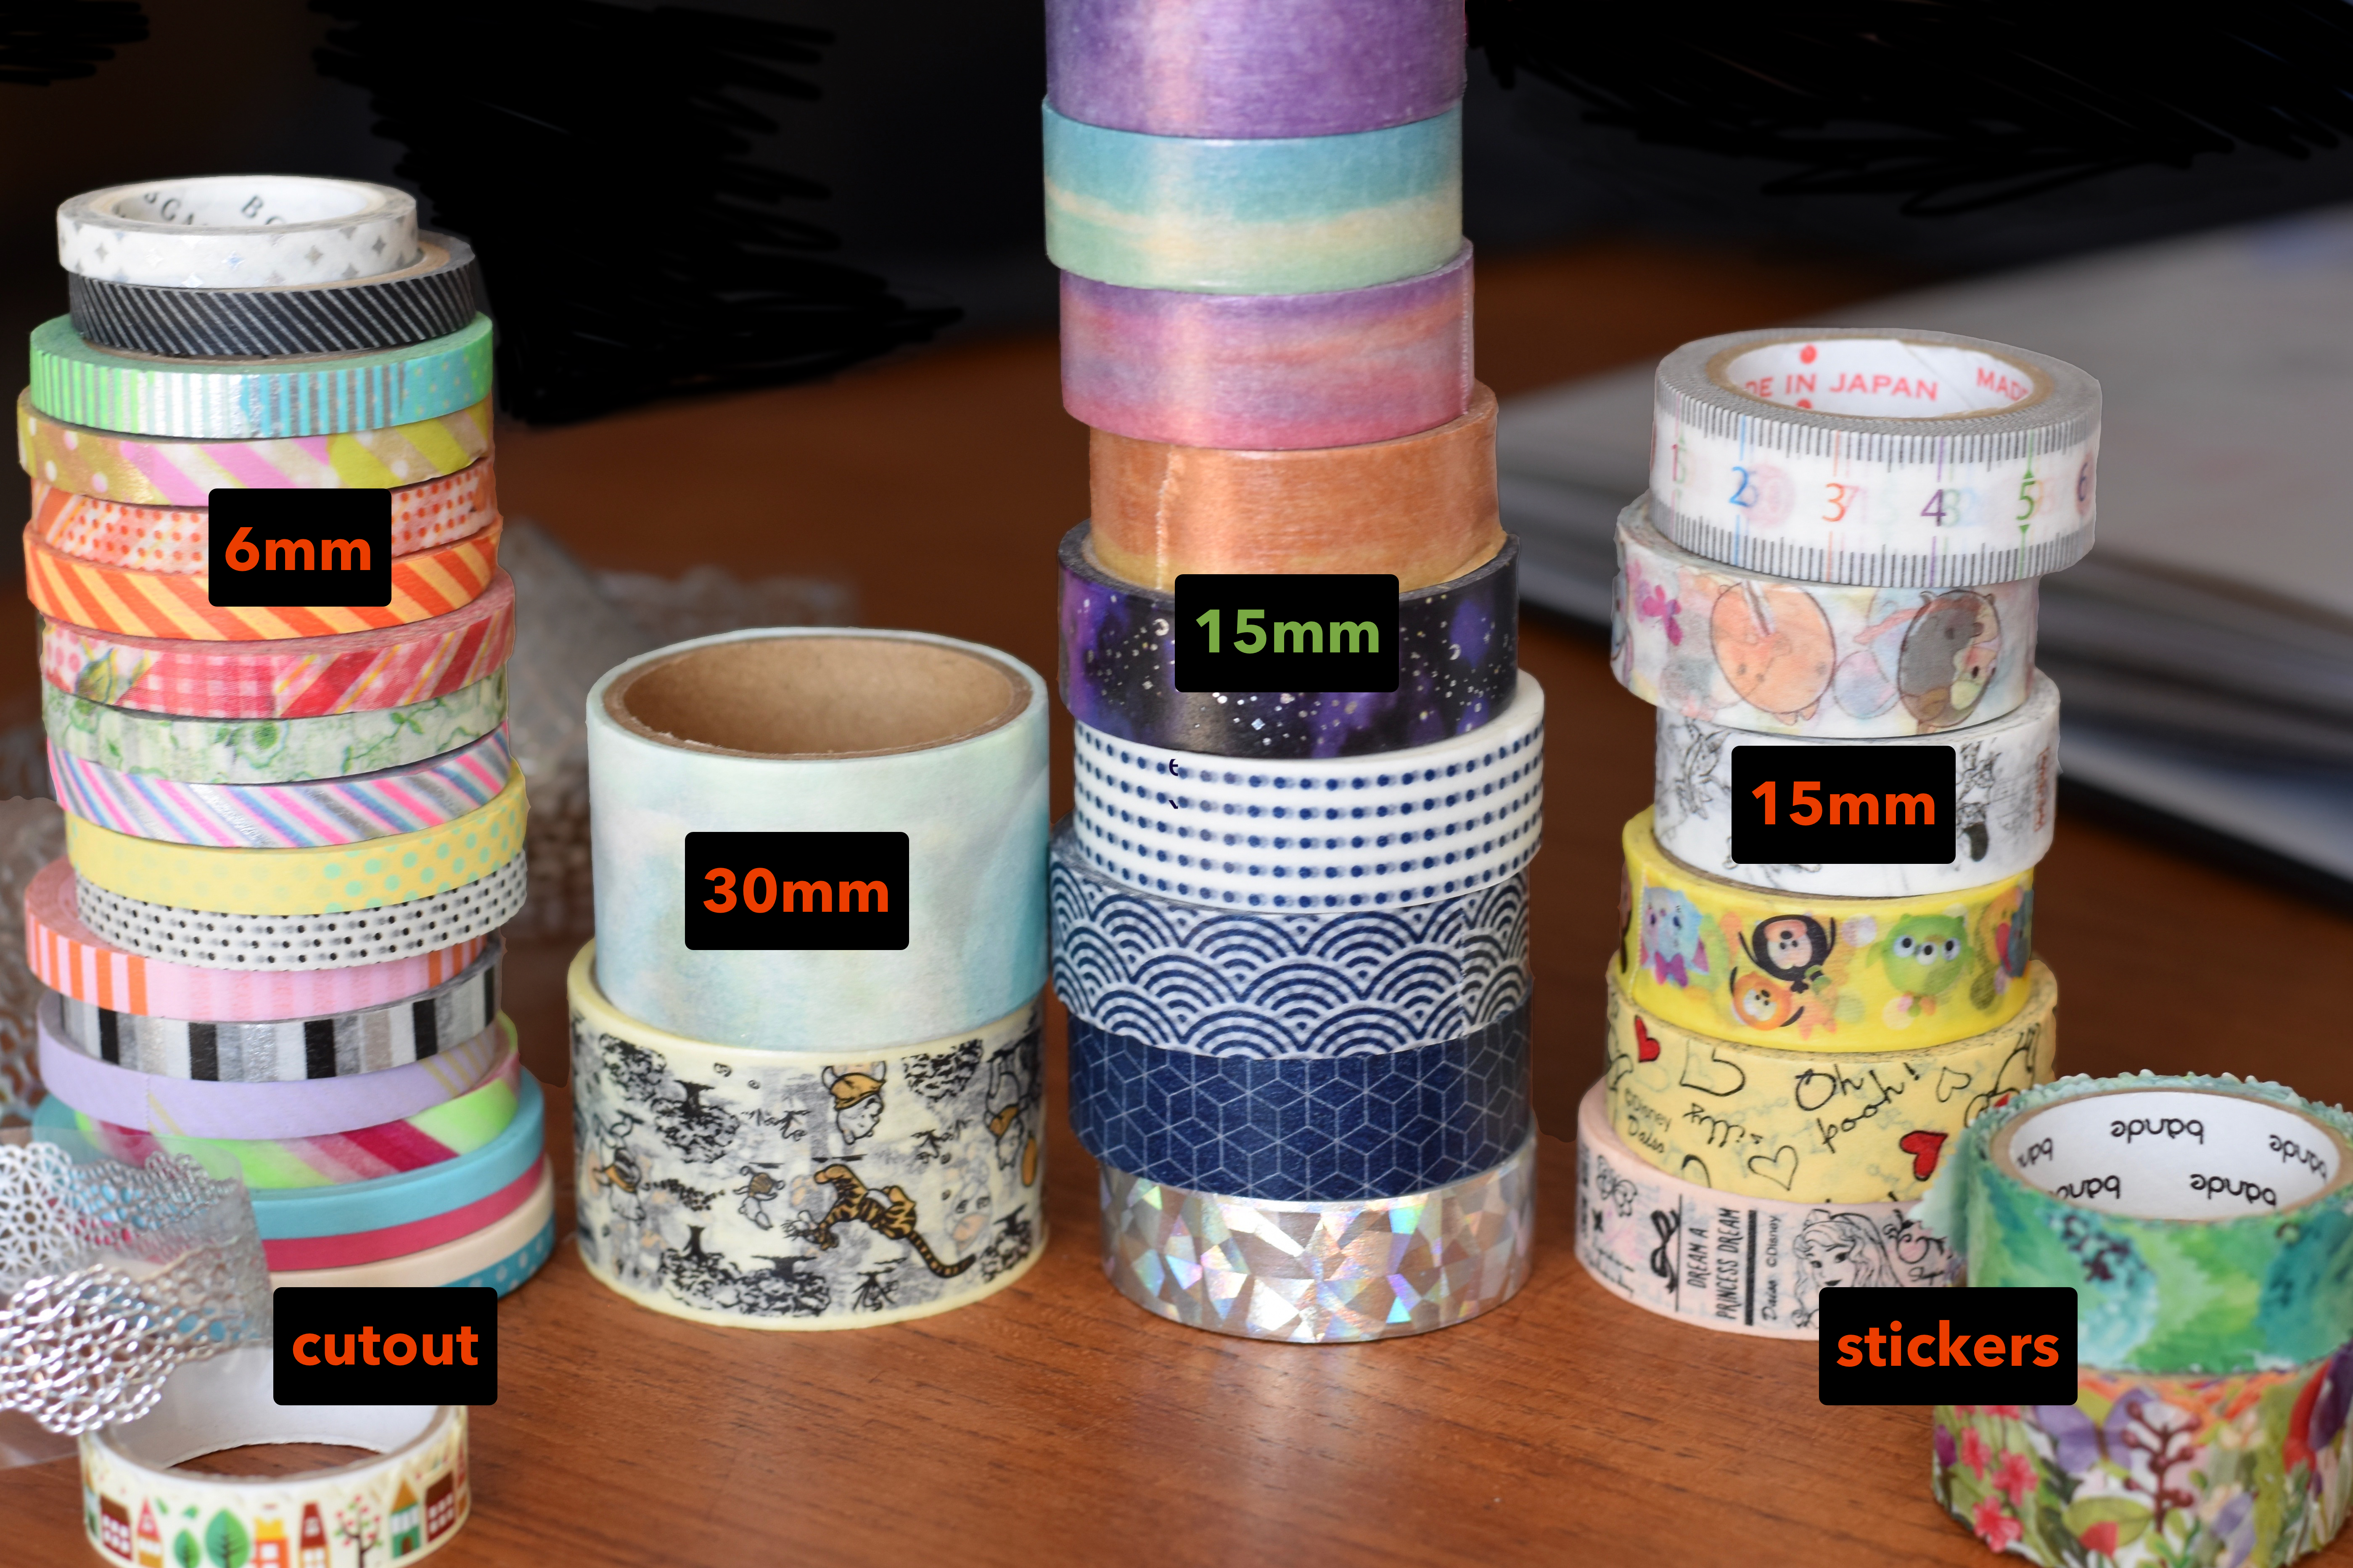 Different kinds of washi tape. Cutout tape, 6mm wide tape, 30mm wide tape, 15mm wide tape with simple designs, 15mm wide tape with complex designs, washi tape stickers